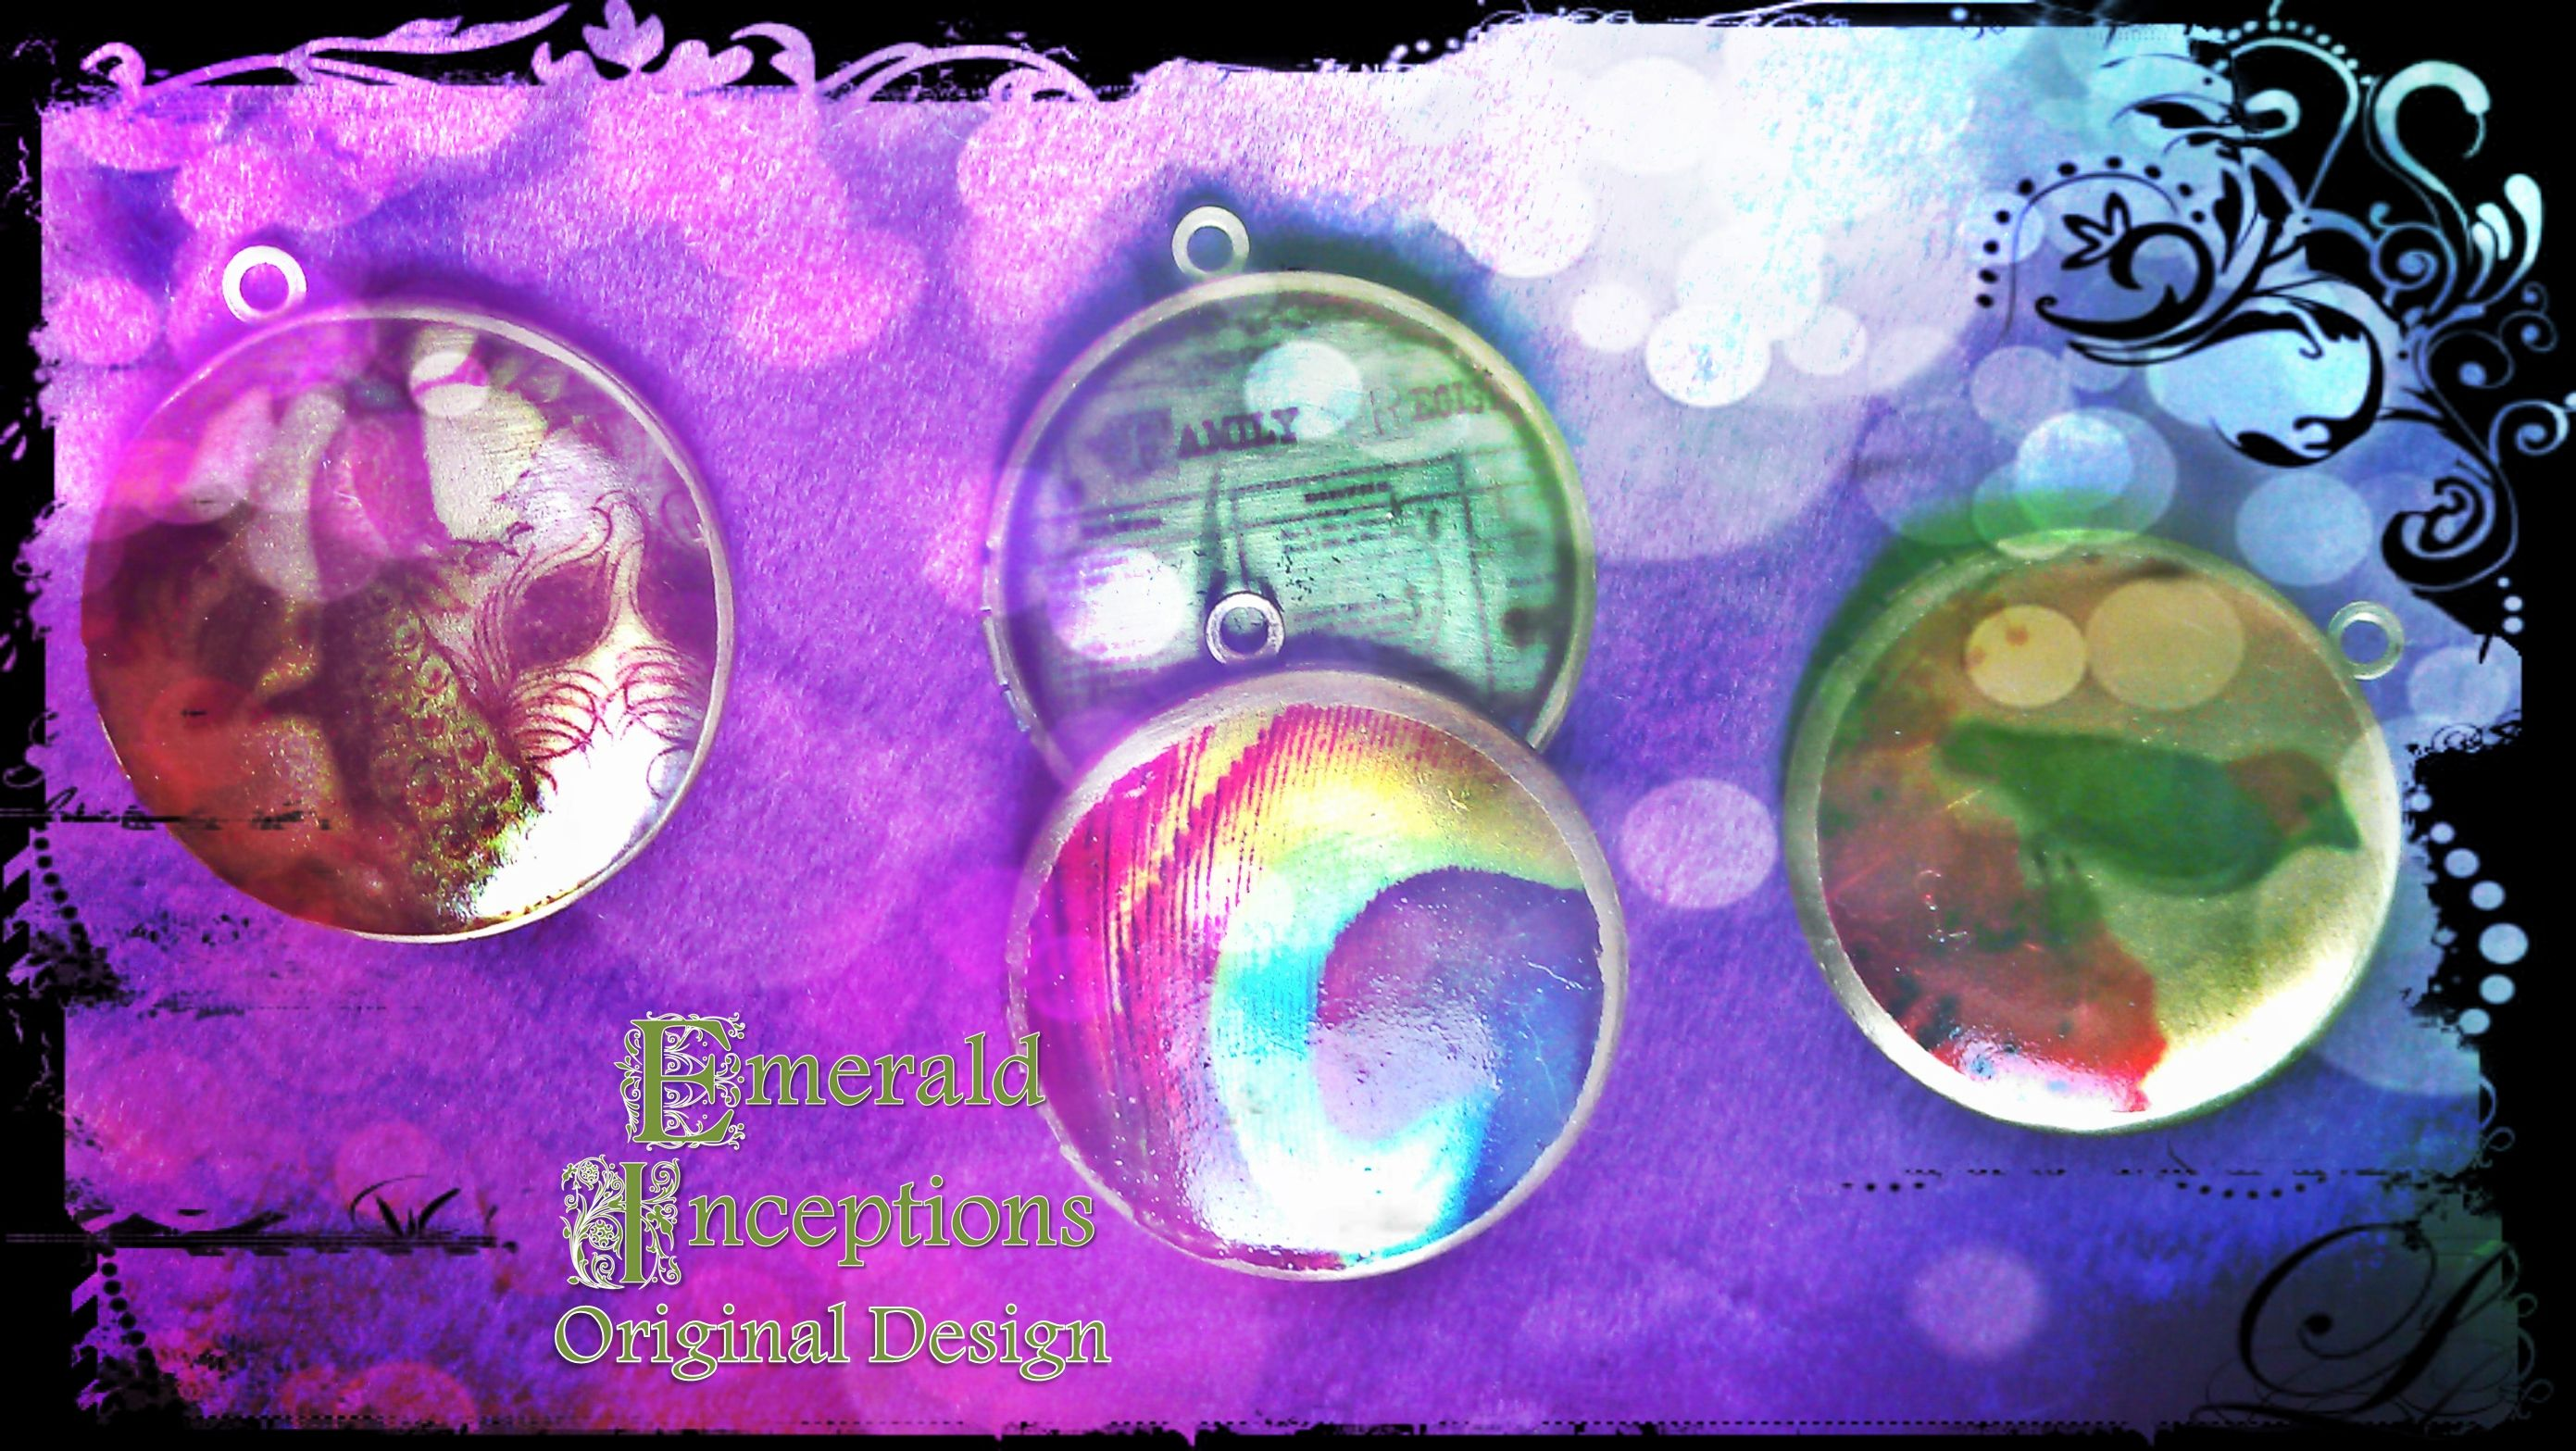 Brand spanking new lockets made using image transfer technique ;) ~ another unique design by Emerald Inceptions, check us out on FB, Twitter and Website ;)